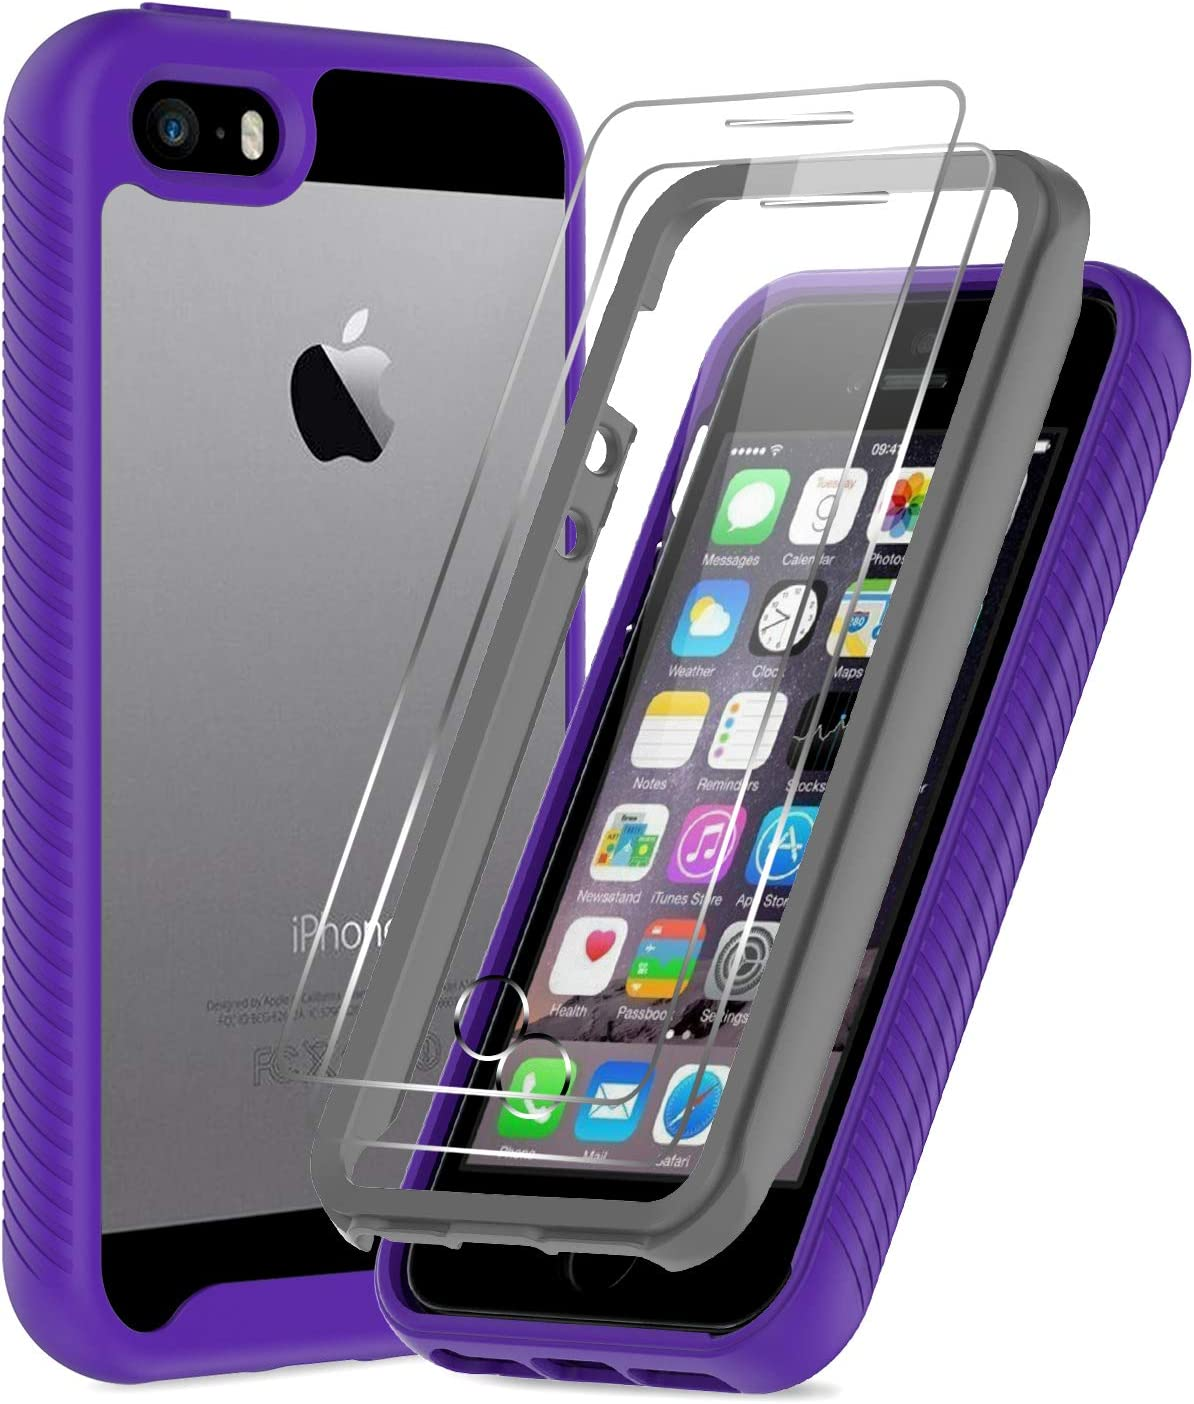 LeYi iPhone SE Case (2016), iPhone 5 Case, iPhone 5s Case with 2 Tempered Glass Screen Protector, Full-Body Shockproof Rugged Hybrid Bumper Clear Protective Phone Cover Cases for iPhone 5s/5, Purple